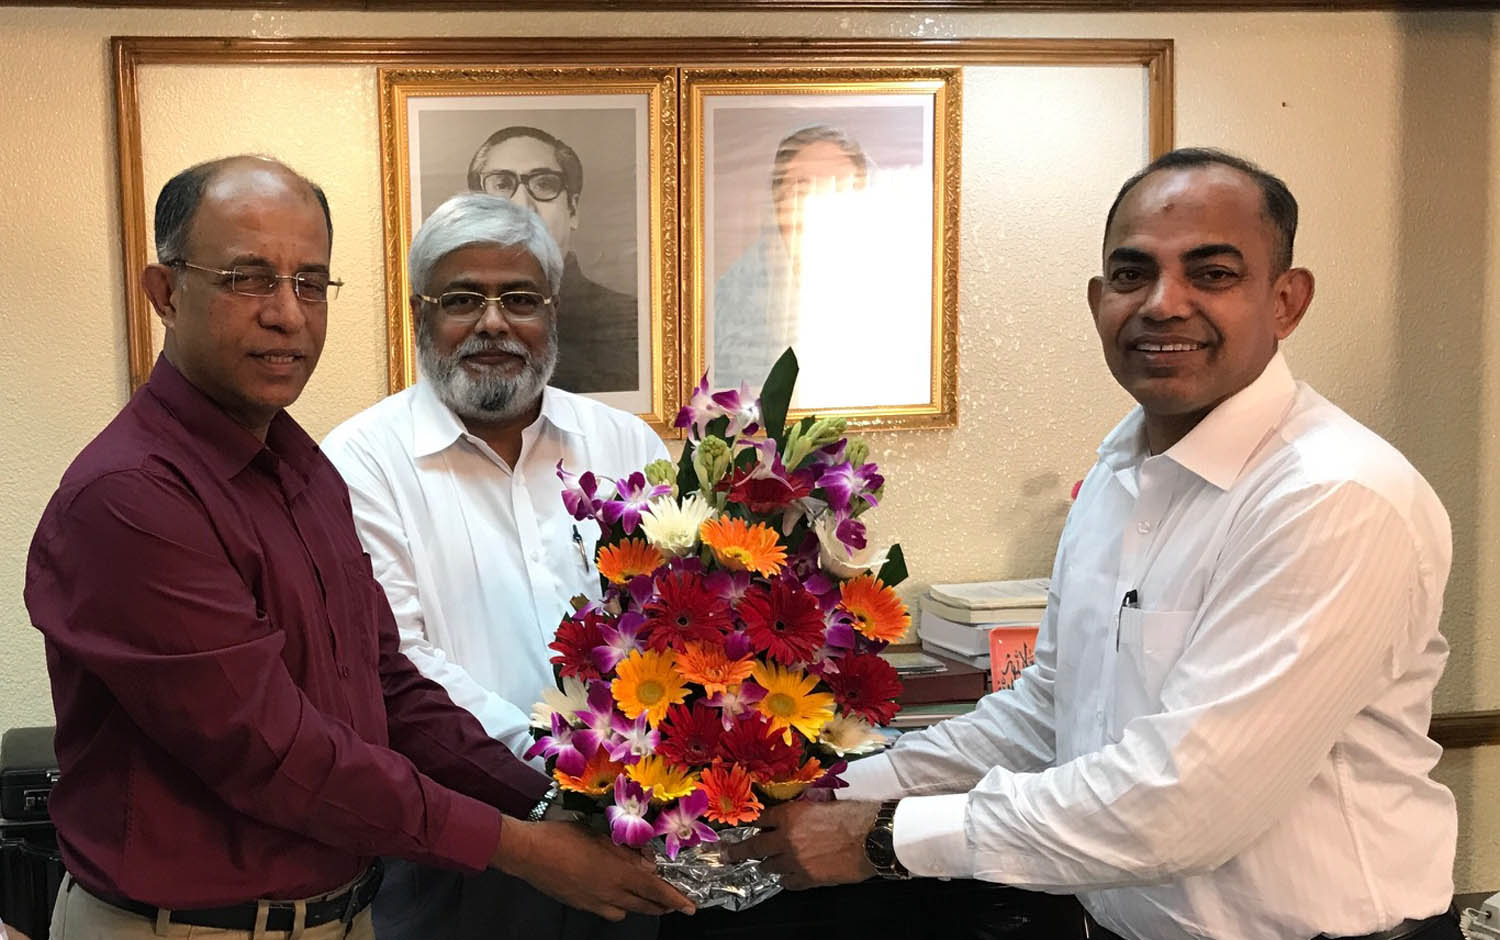 Archery officials make courtesy call to RAJUK chairman